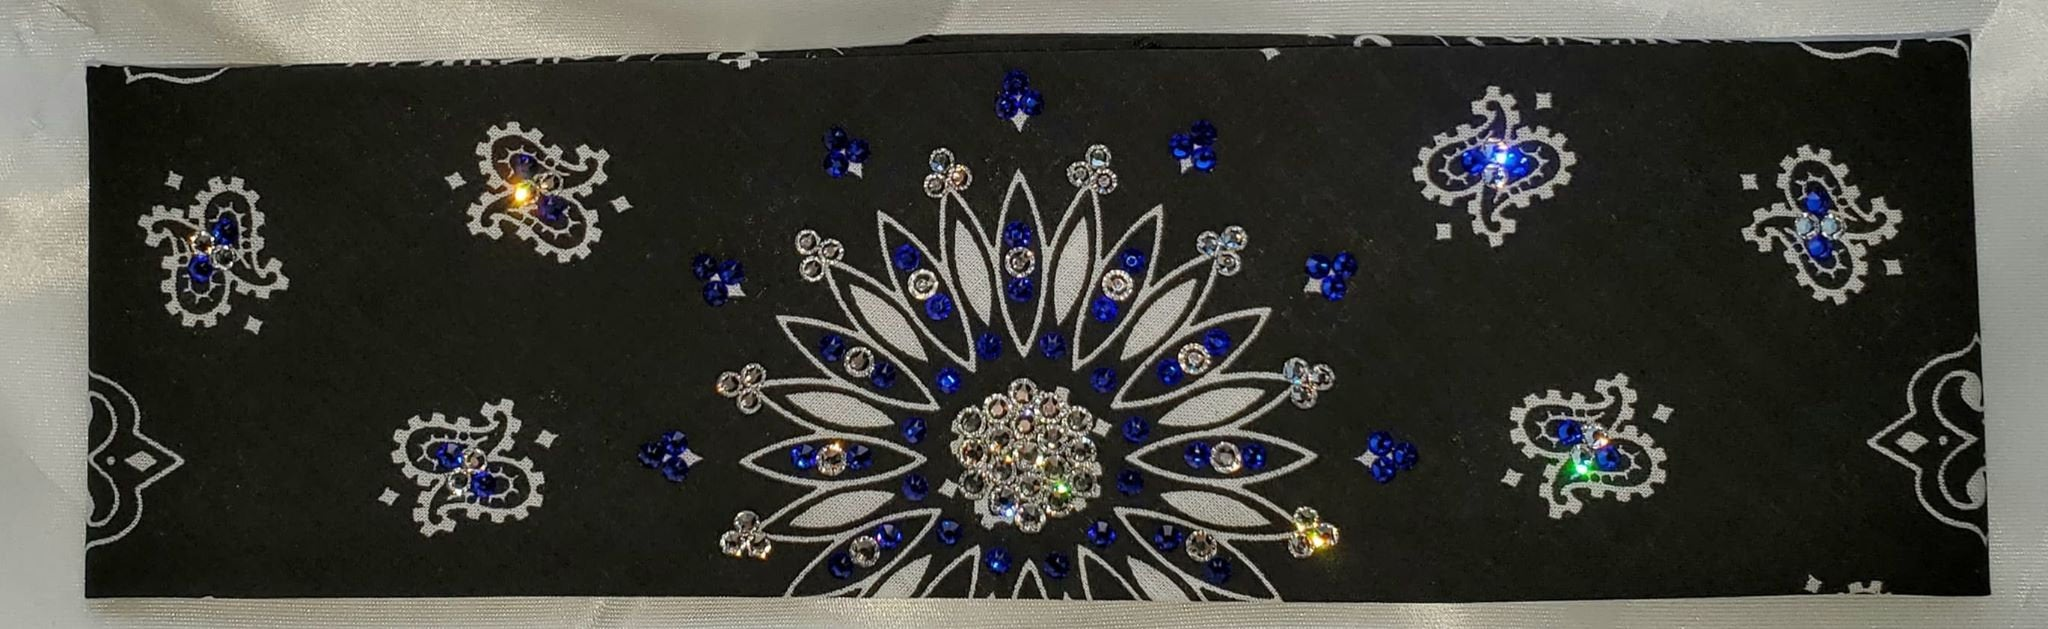 Black Paisley with Blue and Diamond Clear Swarovski Crystals (Sku1900)